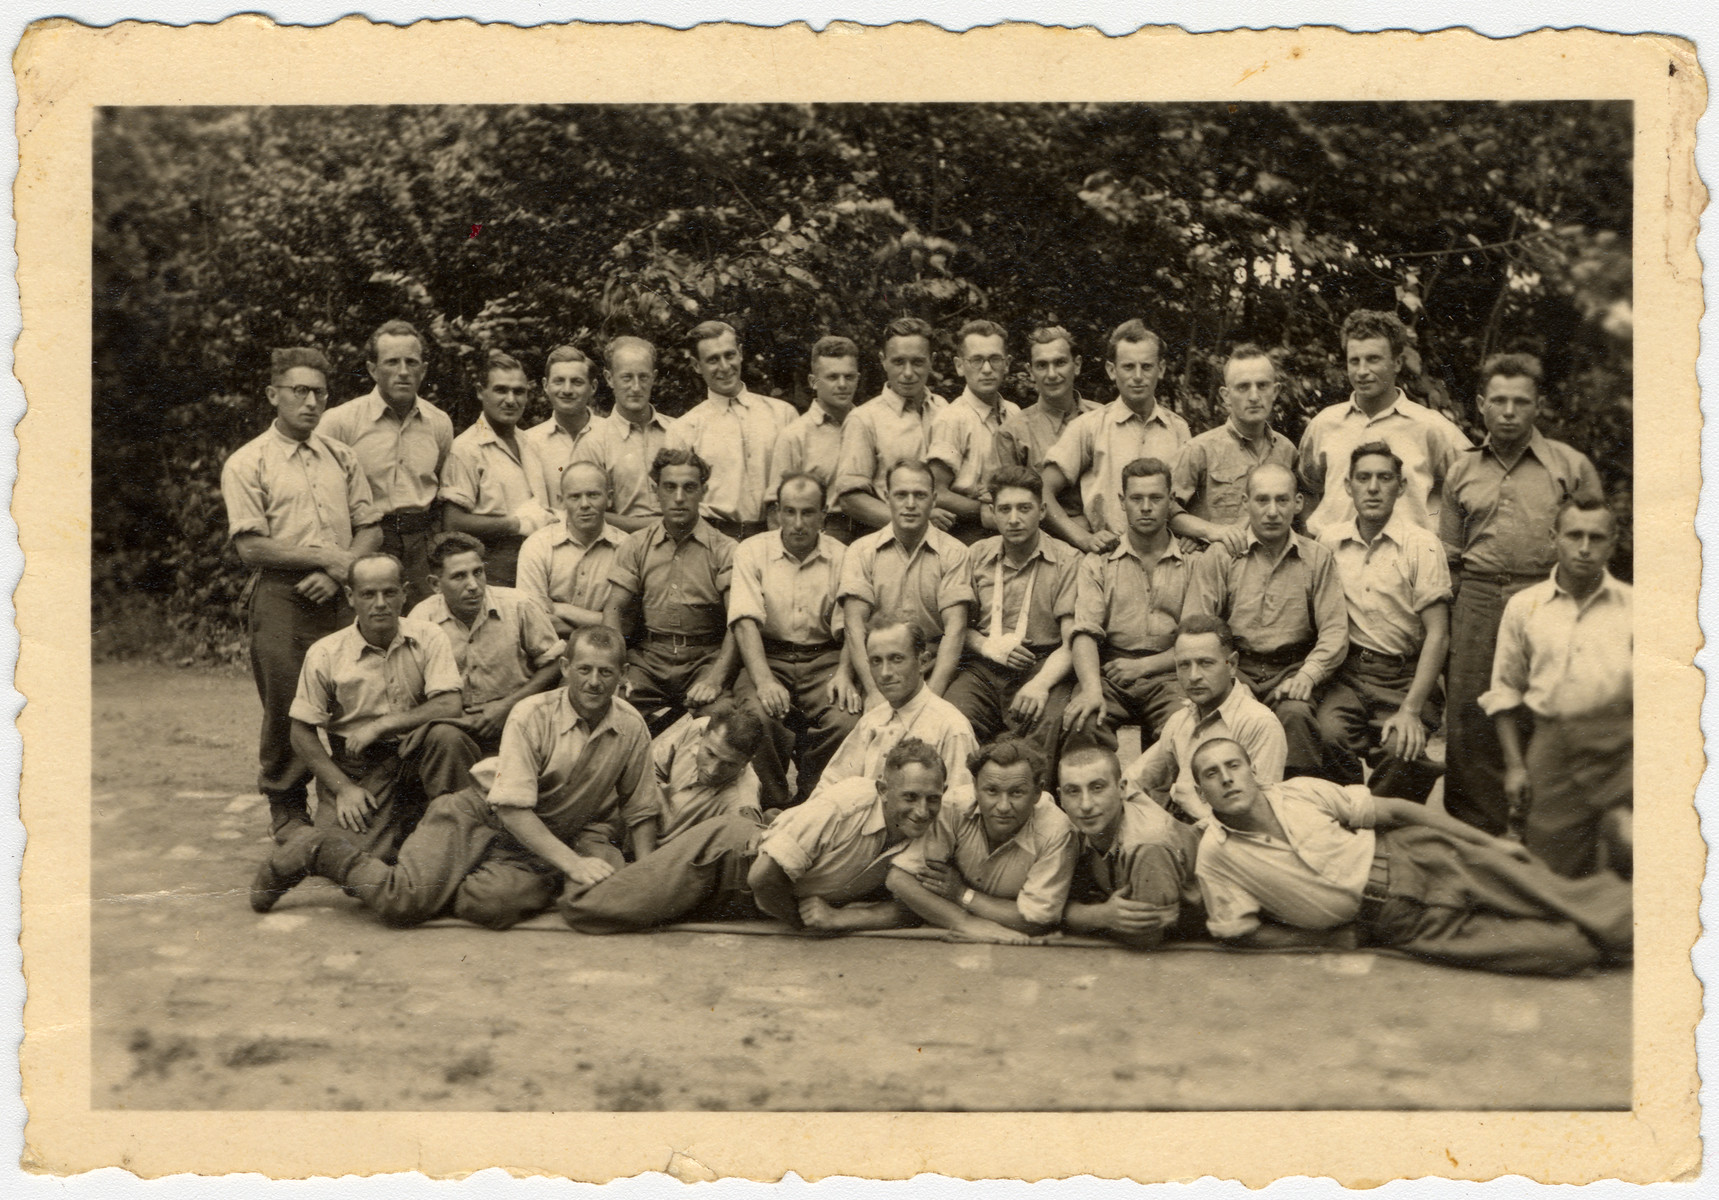 Arbeitskommando on Dominium.  Max Beker is pictured in the middle row, second from the left.